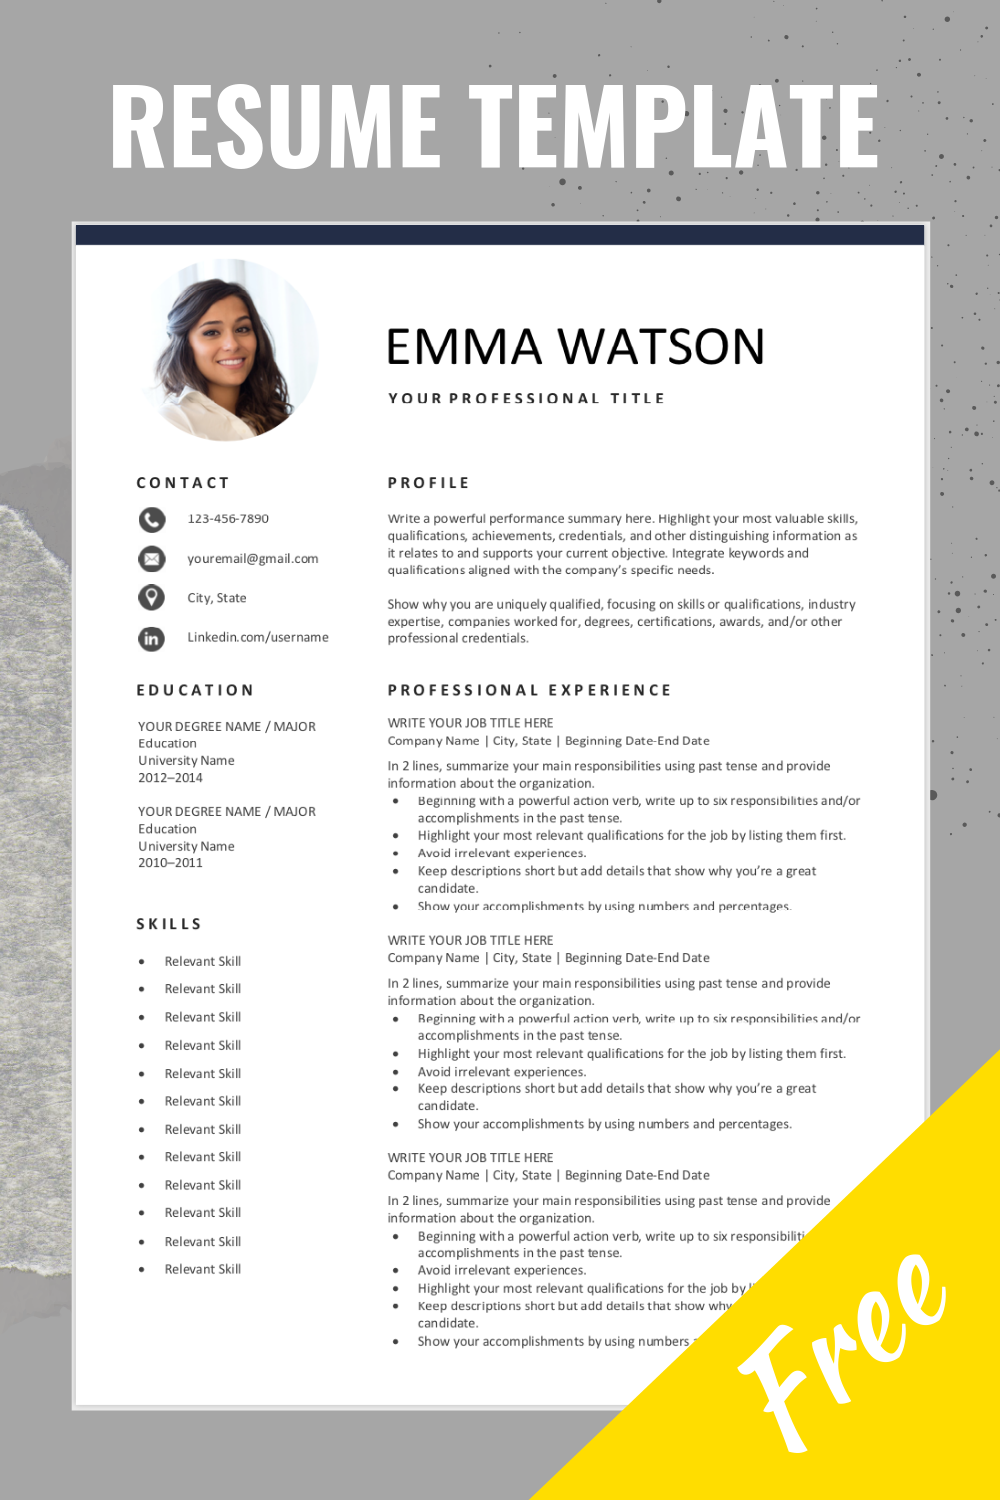 Free Resume Template With Photo Free Resume Template Word